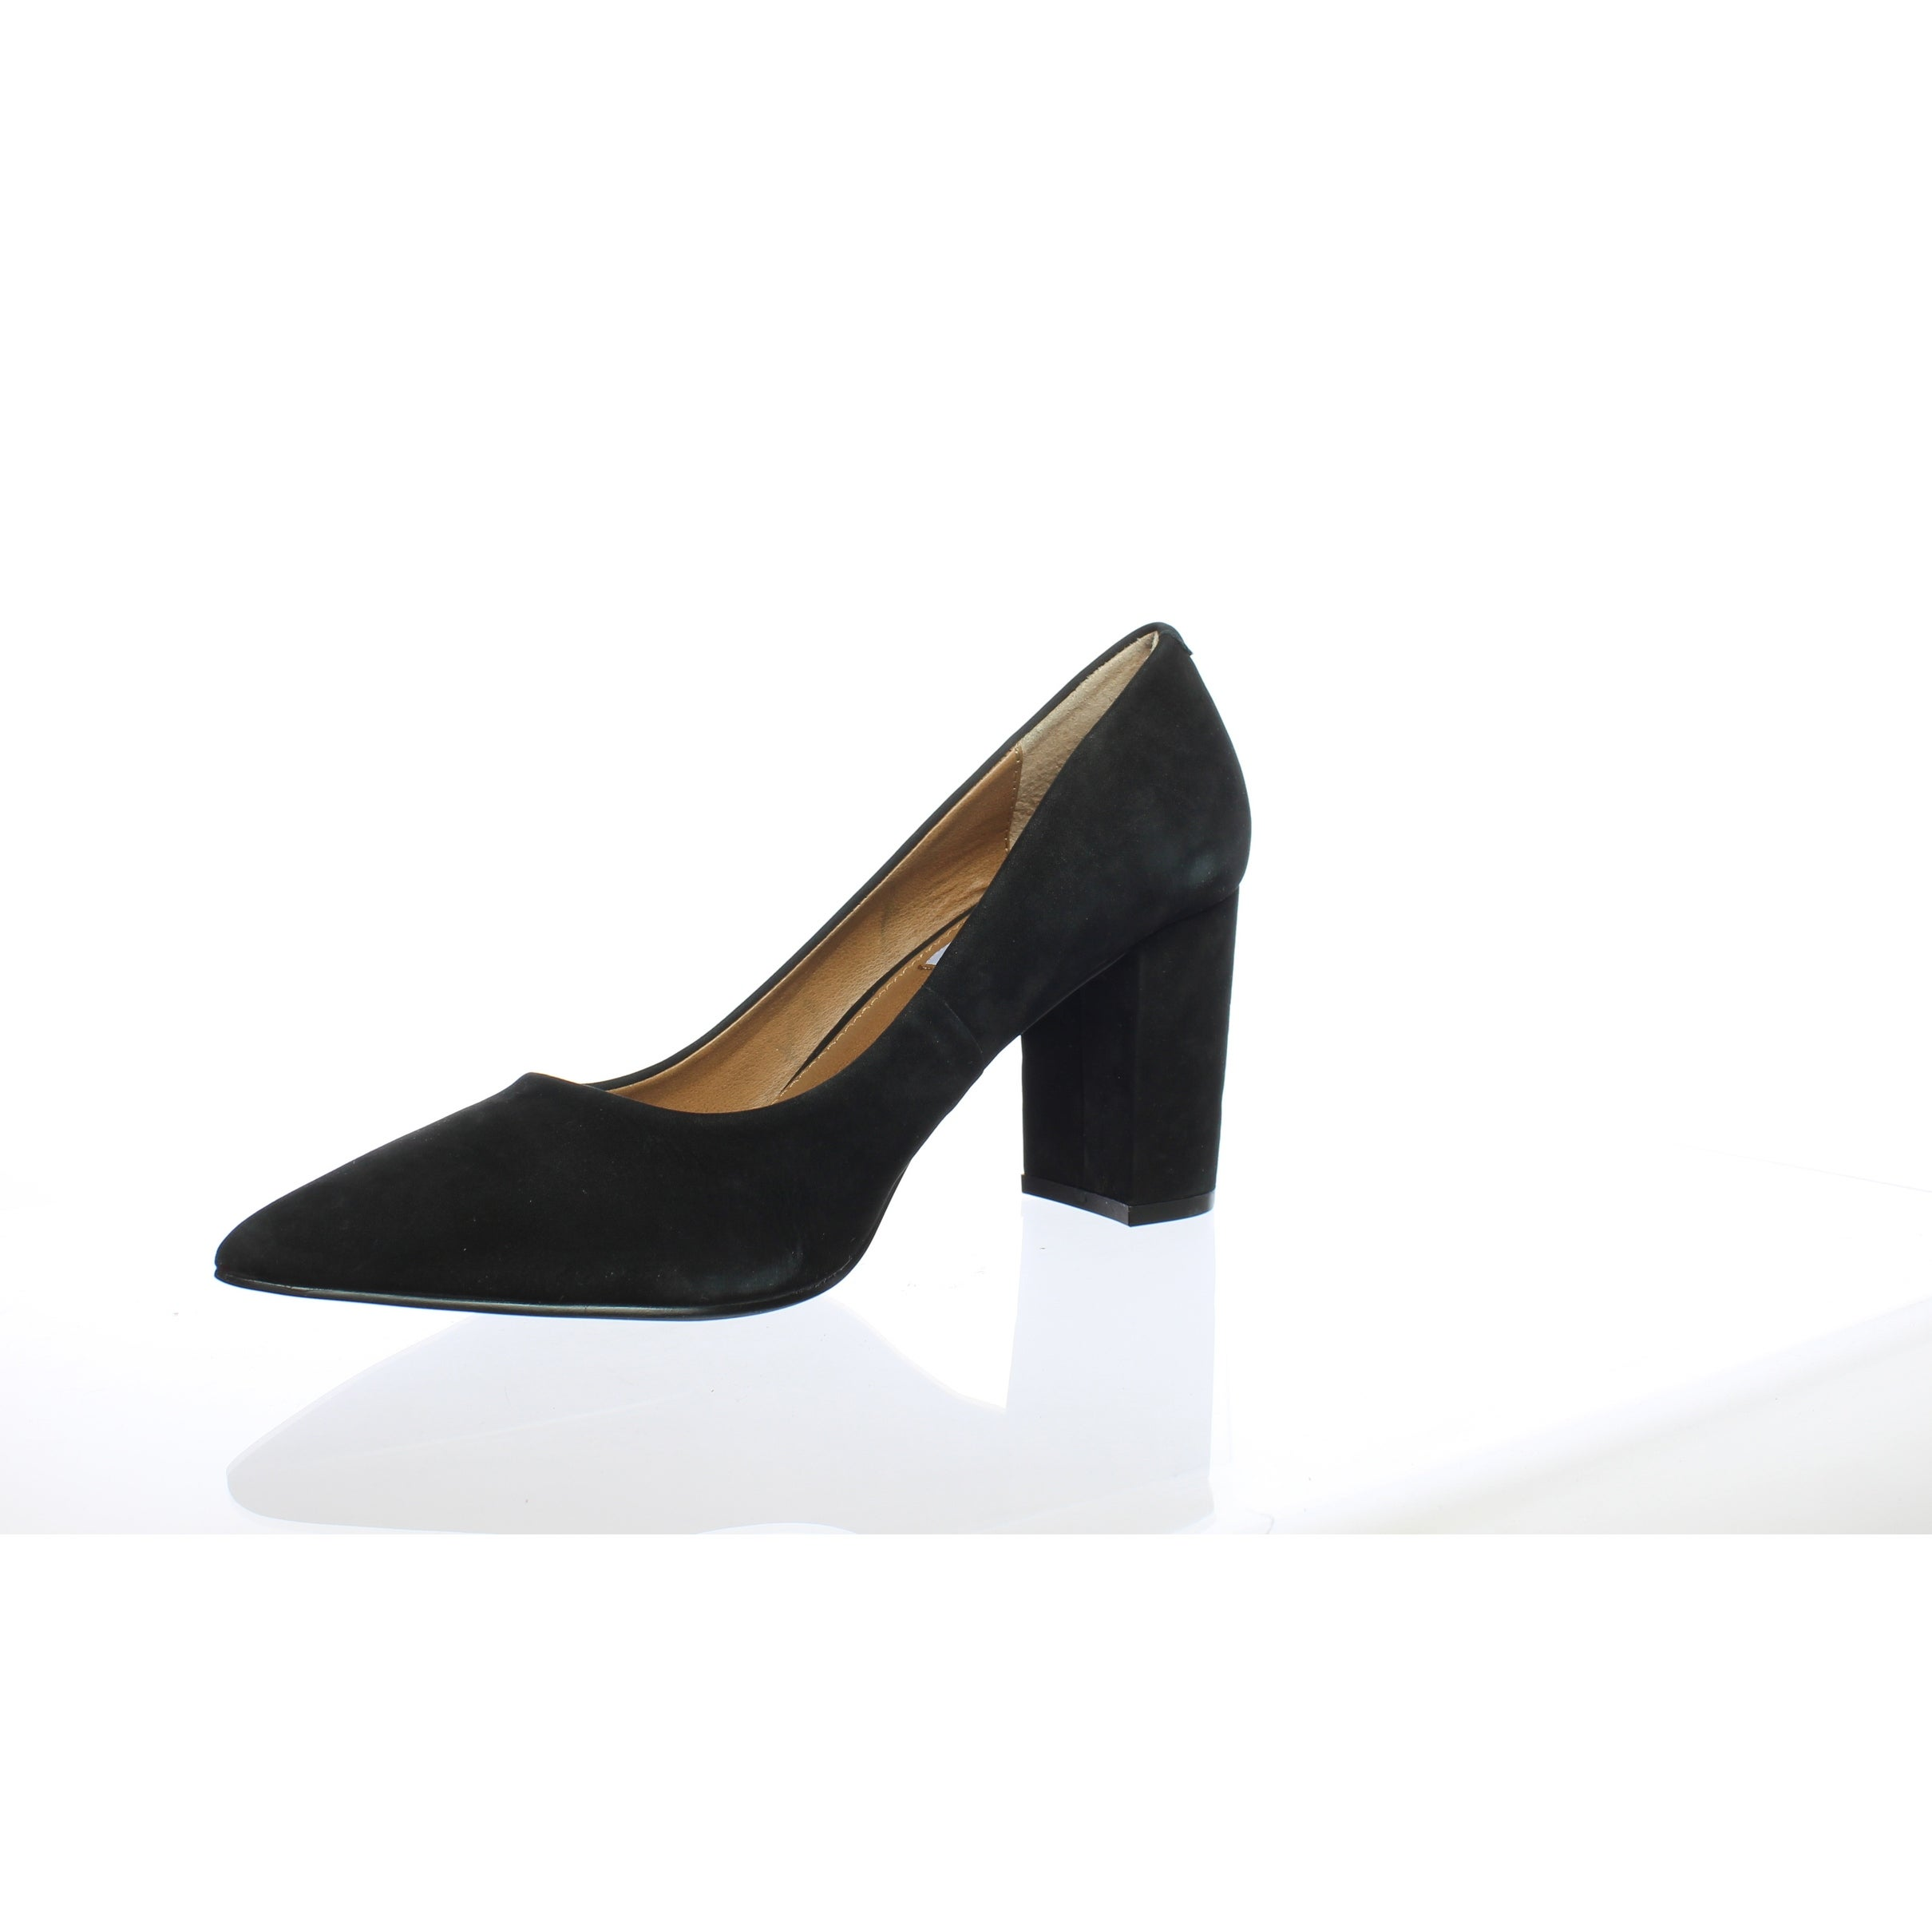 4049577dc10 Shop Steve Madden Womens Ashlyn Black Nubuck Pumps Size 8 - Free Shipping  On Orders Over  45 - Overstock - 27655787